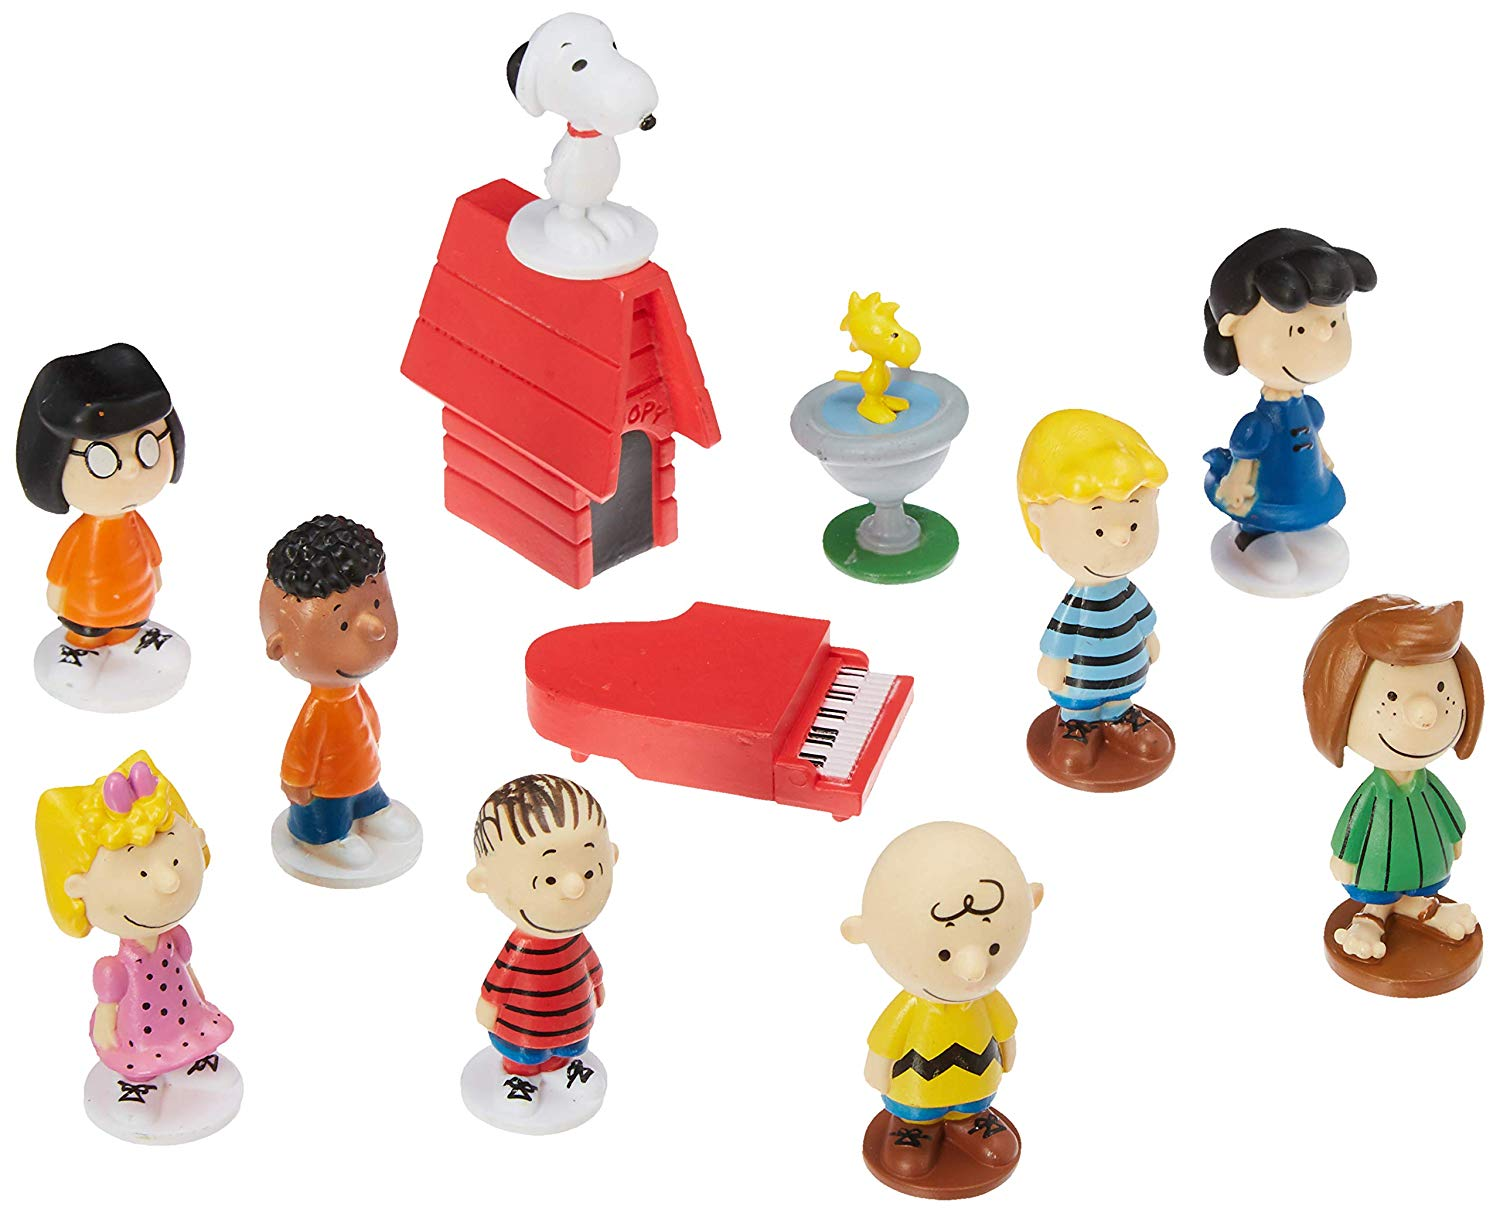 Peanuts Snoopy Figure Toys Set